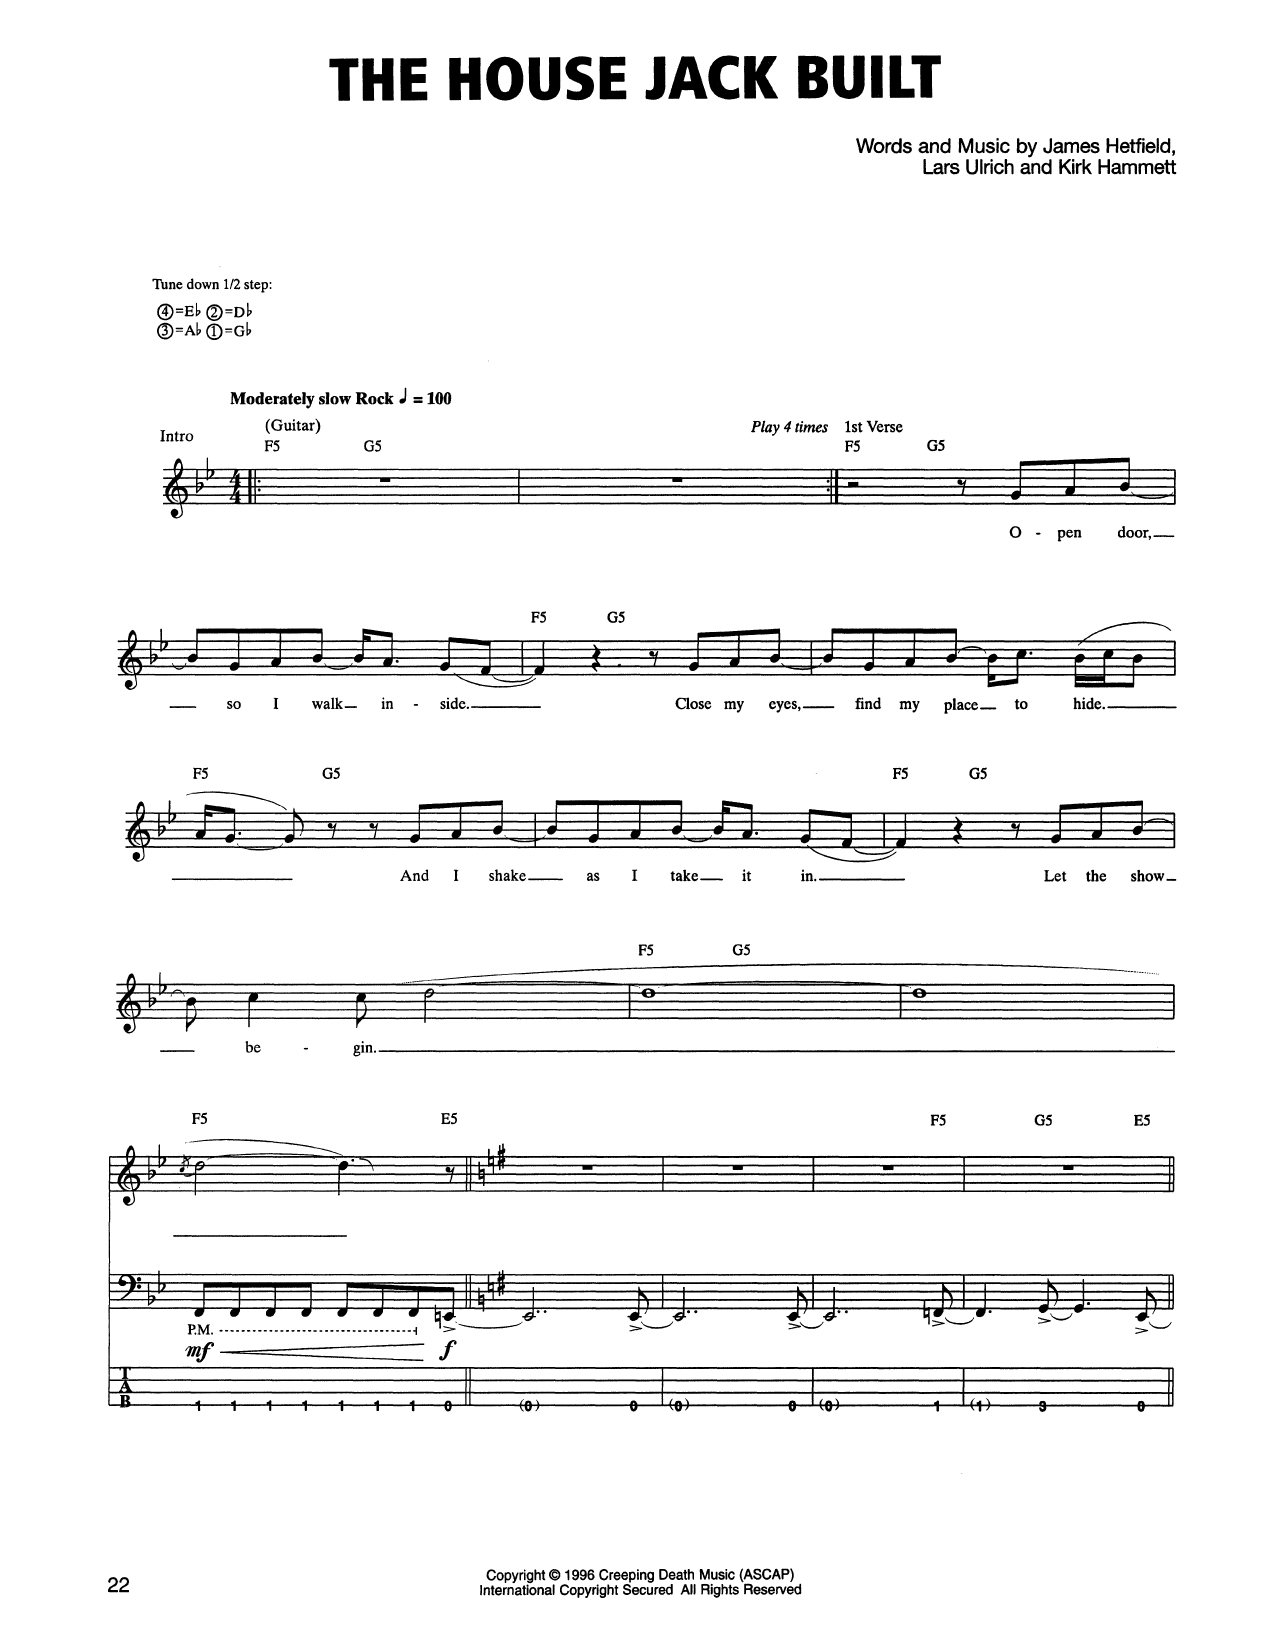 The House Jack Built Sheet Music